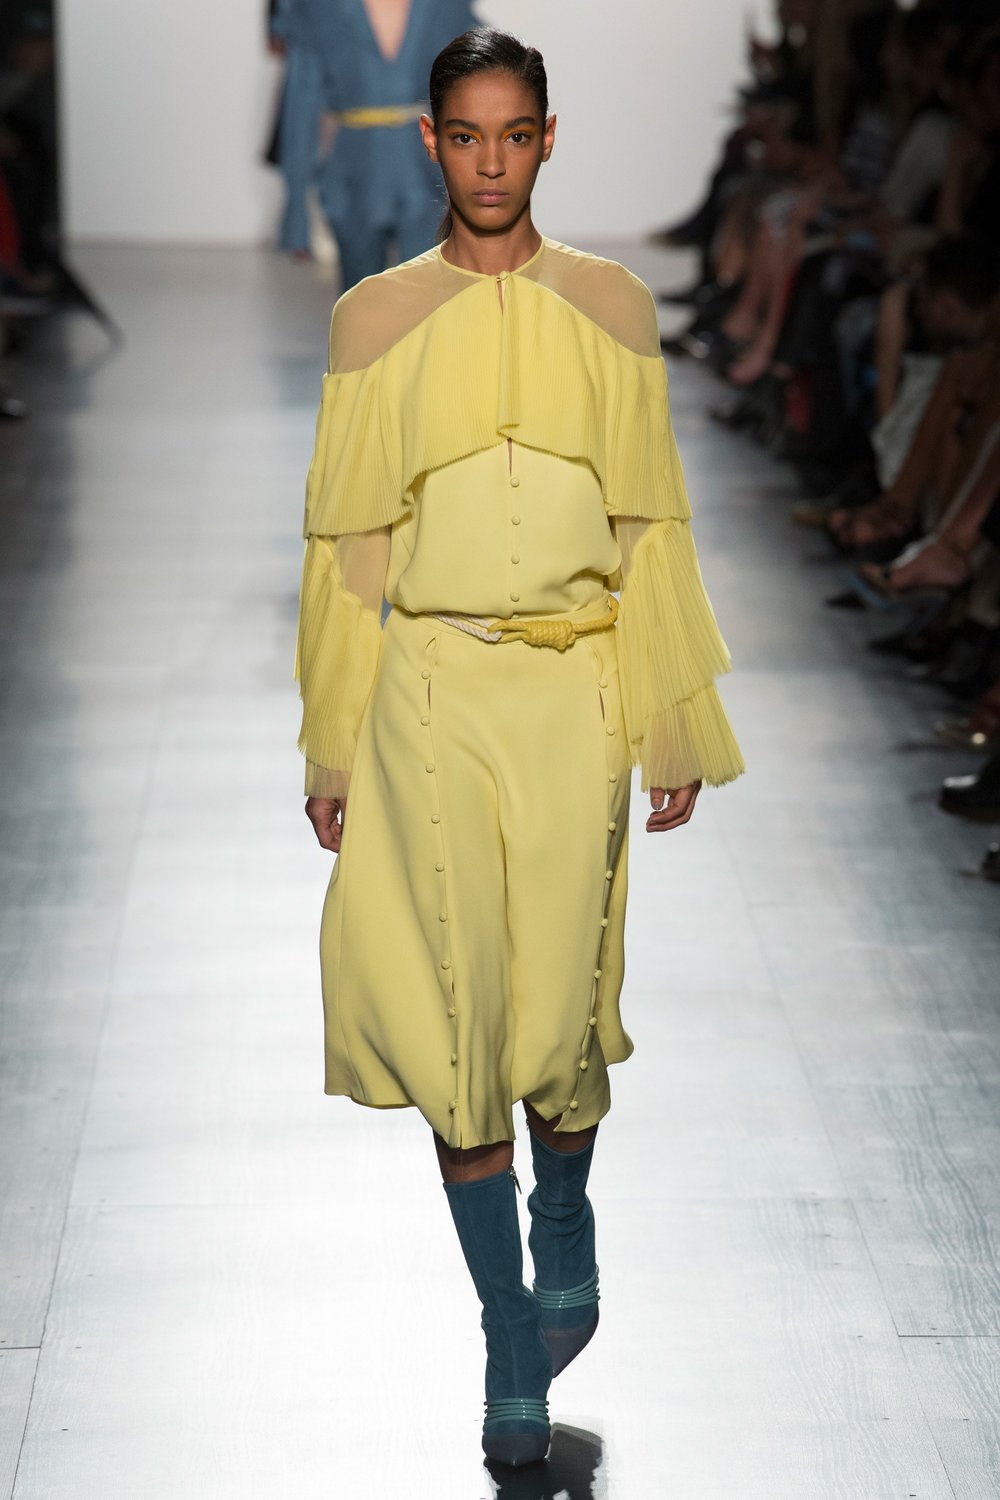 Prabal Gurung - Vogue.com: Yannis Vlamos / indigital.tv